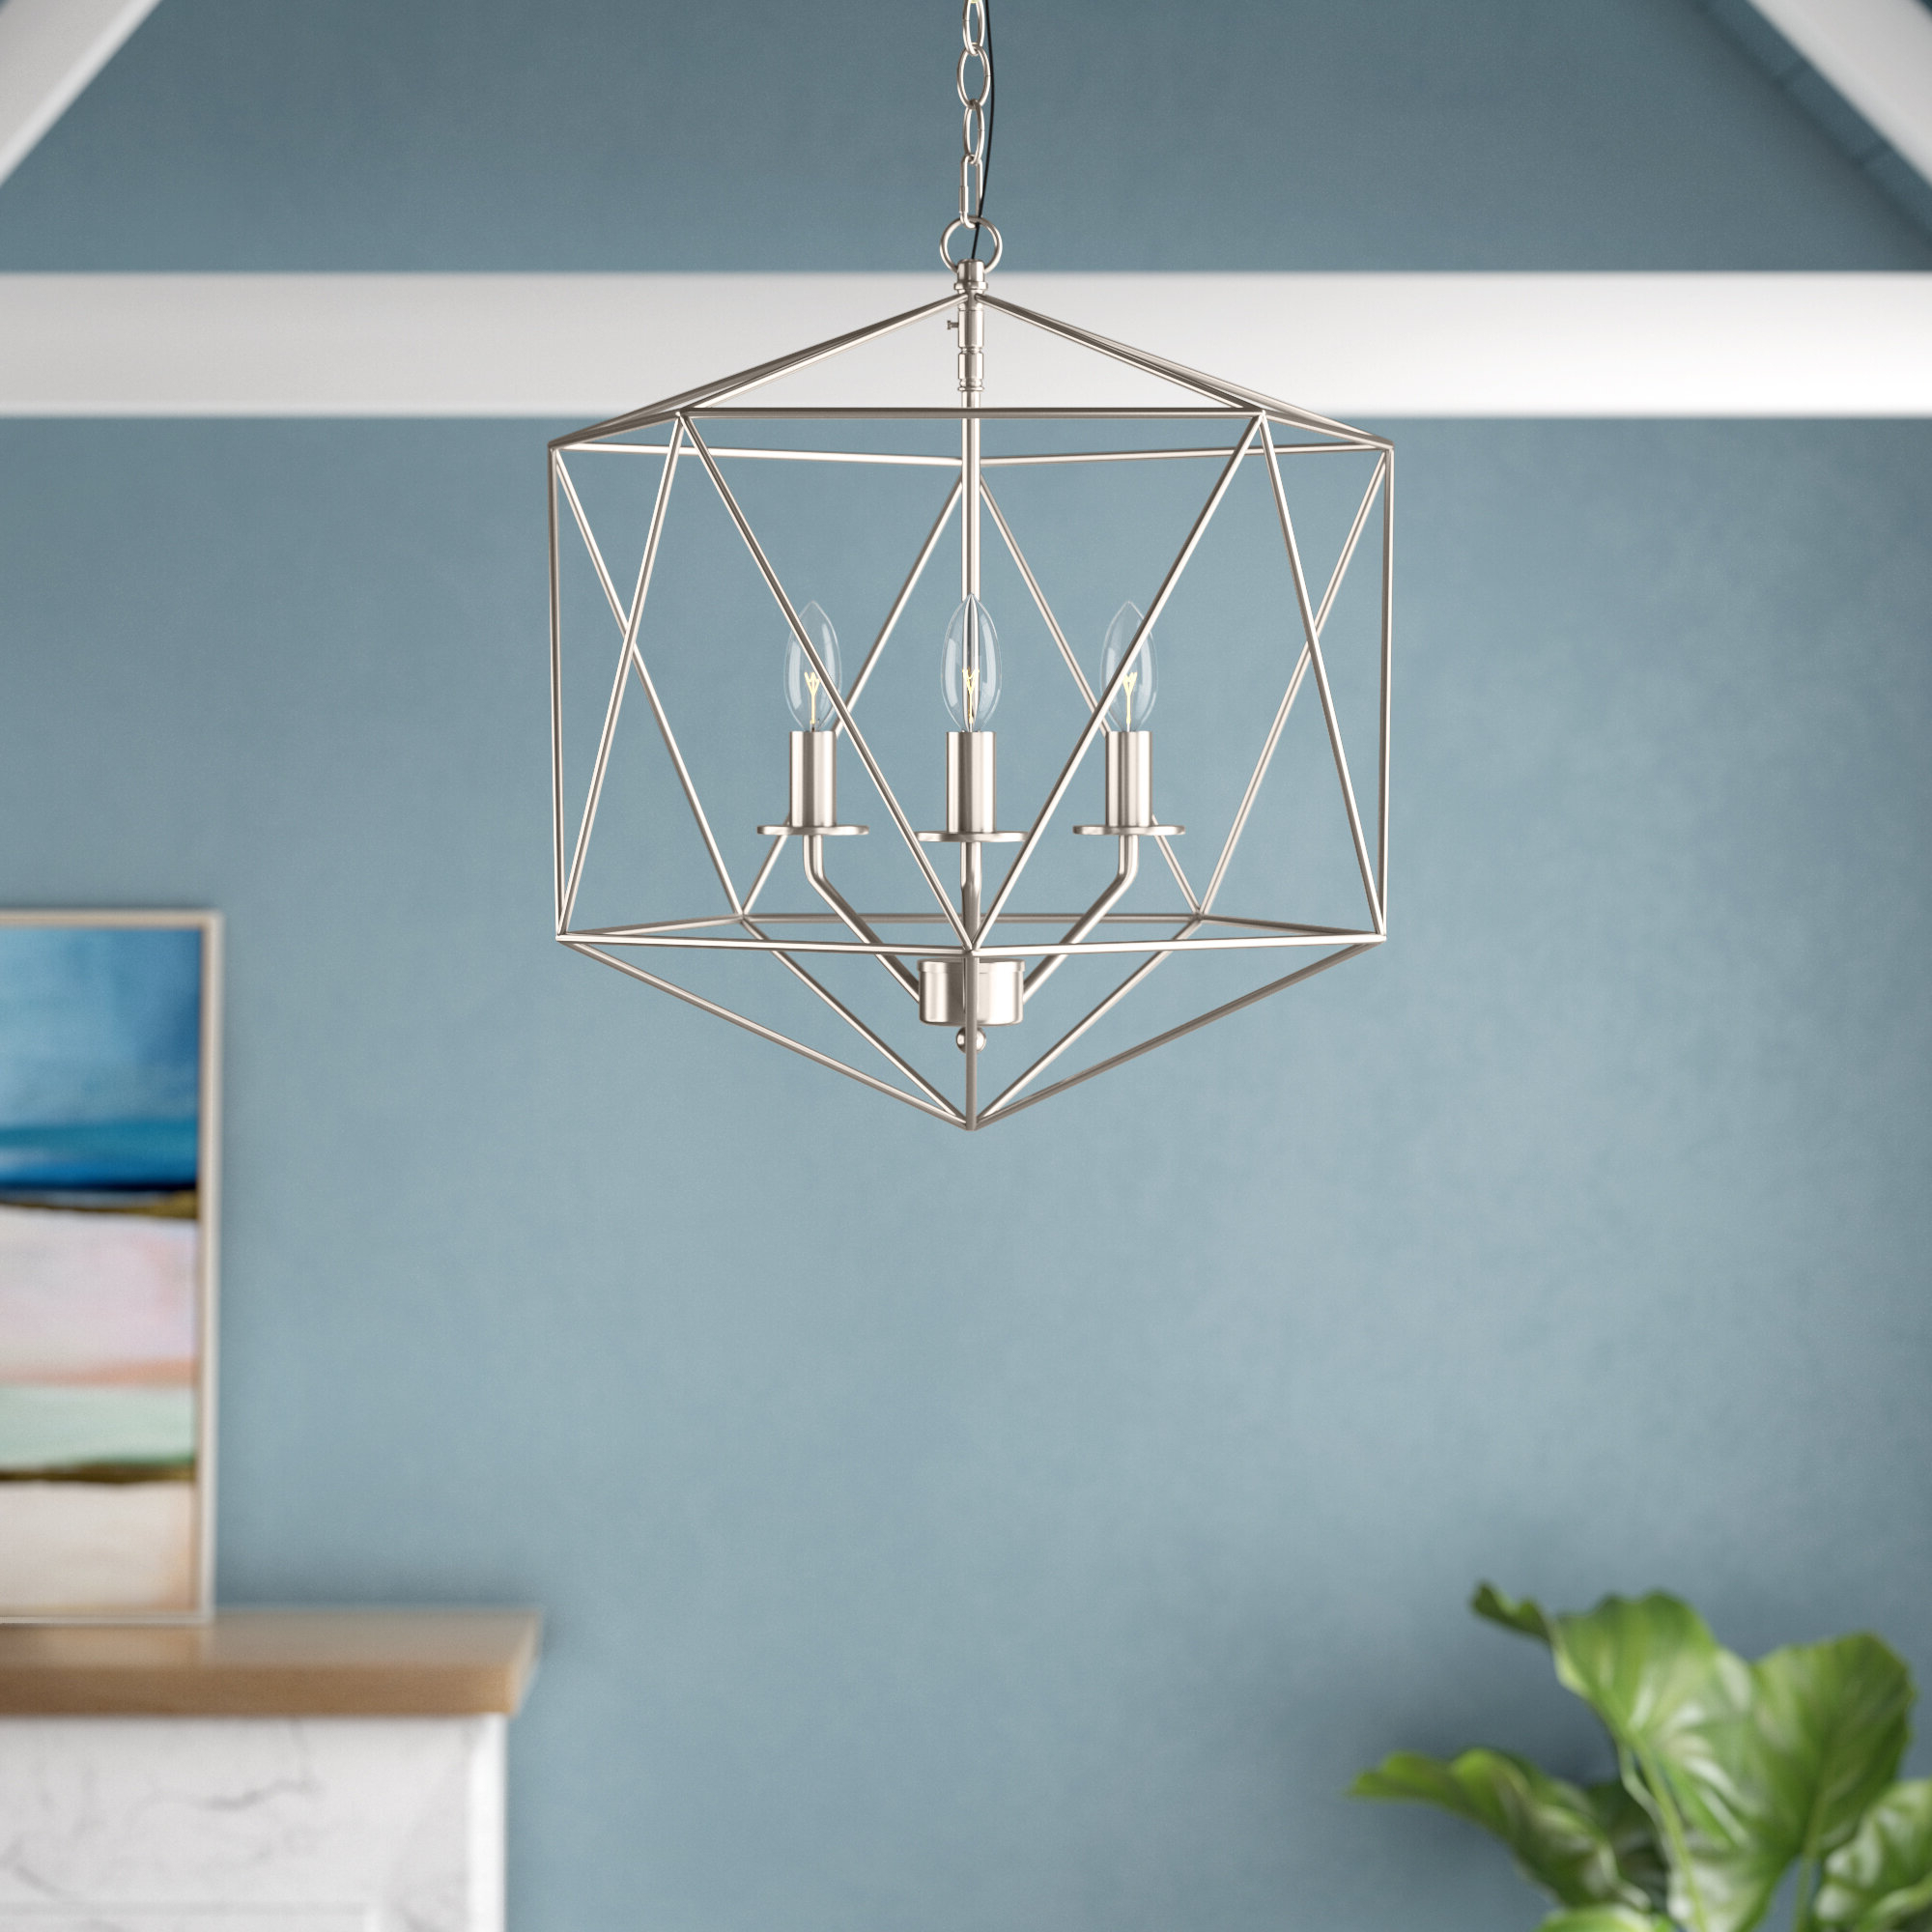 Most Popular Annuziata 3 Light Unique/statement Chandeliers With Regard To Todd 3 Light Geometric Chandelier (View 14 of 25)